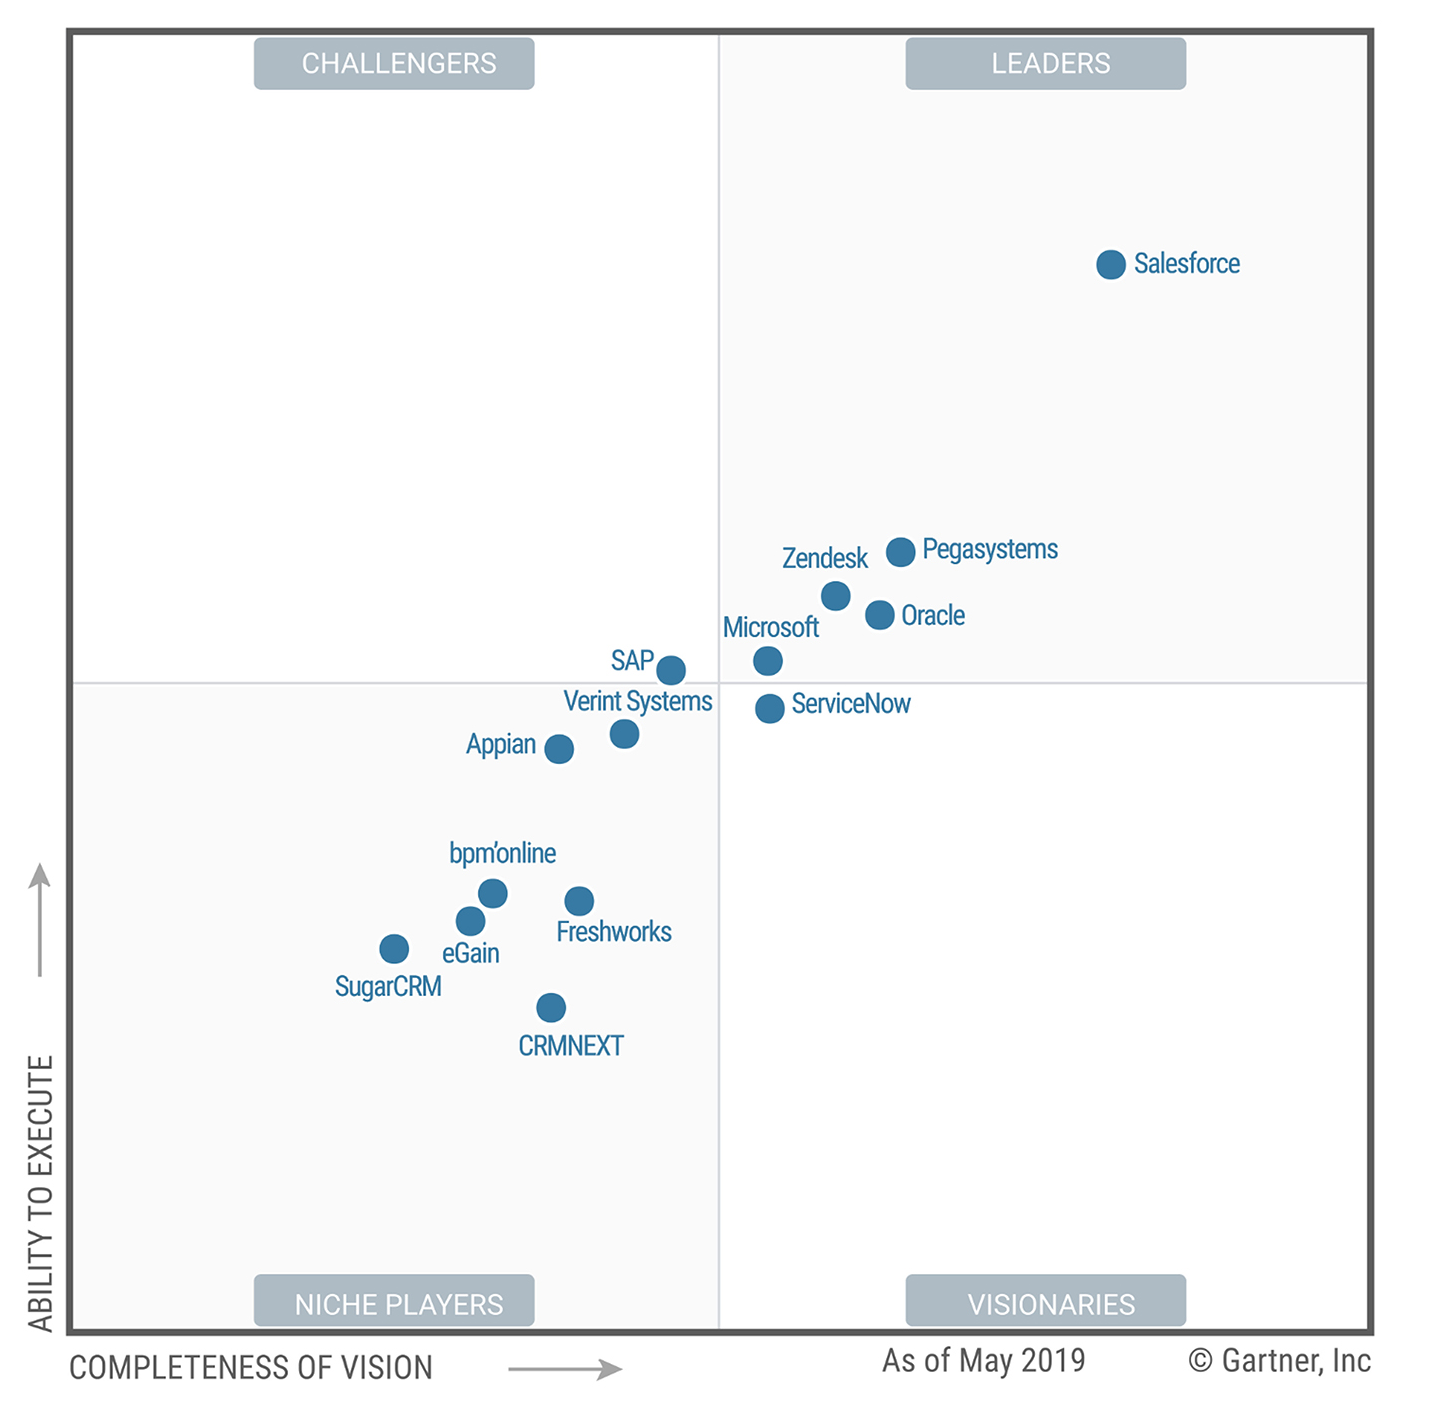 Magic Quadrant solution Helpdesk 2019 par Gartner